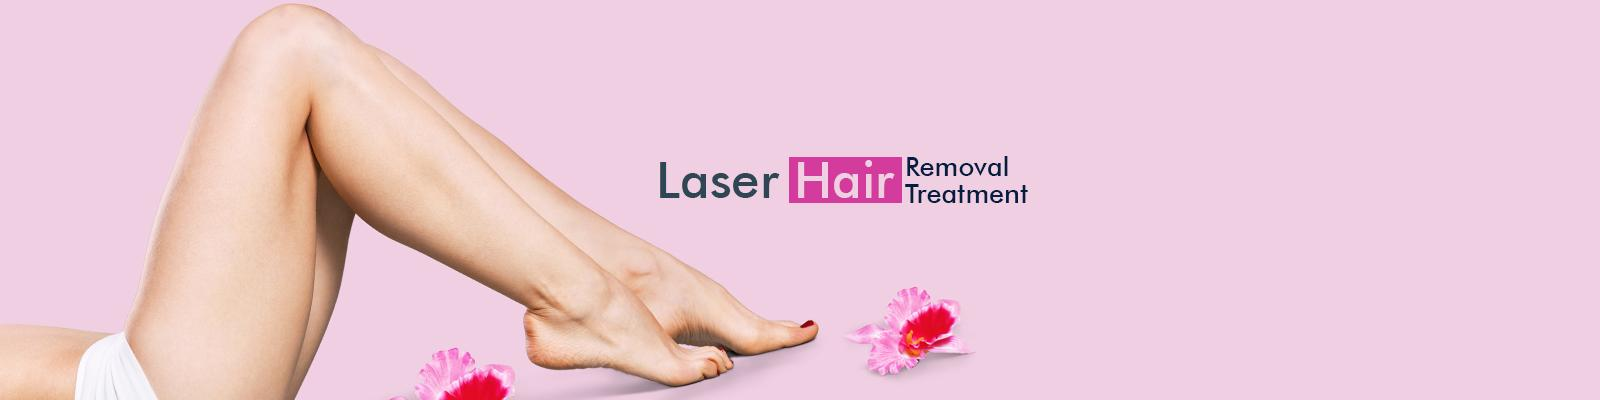 Laser Hair Removal Treatment Permanent Hair Removal Treatment In